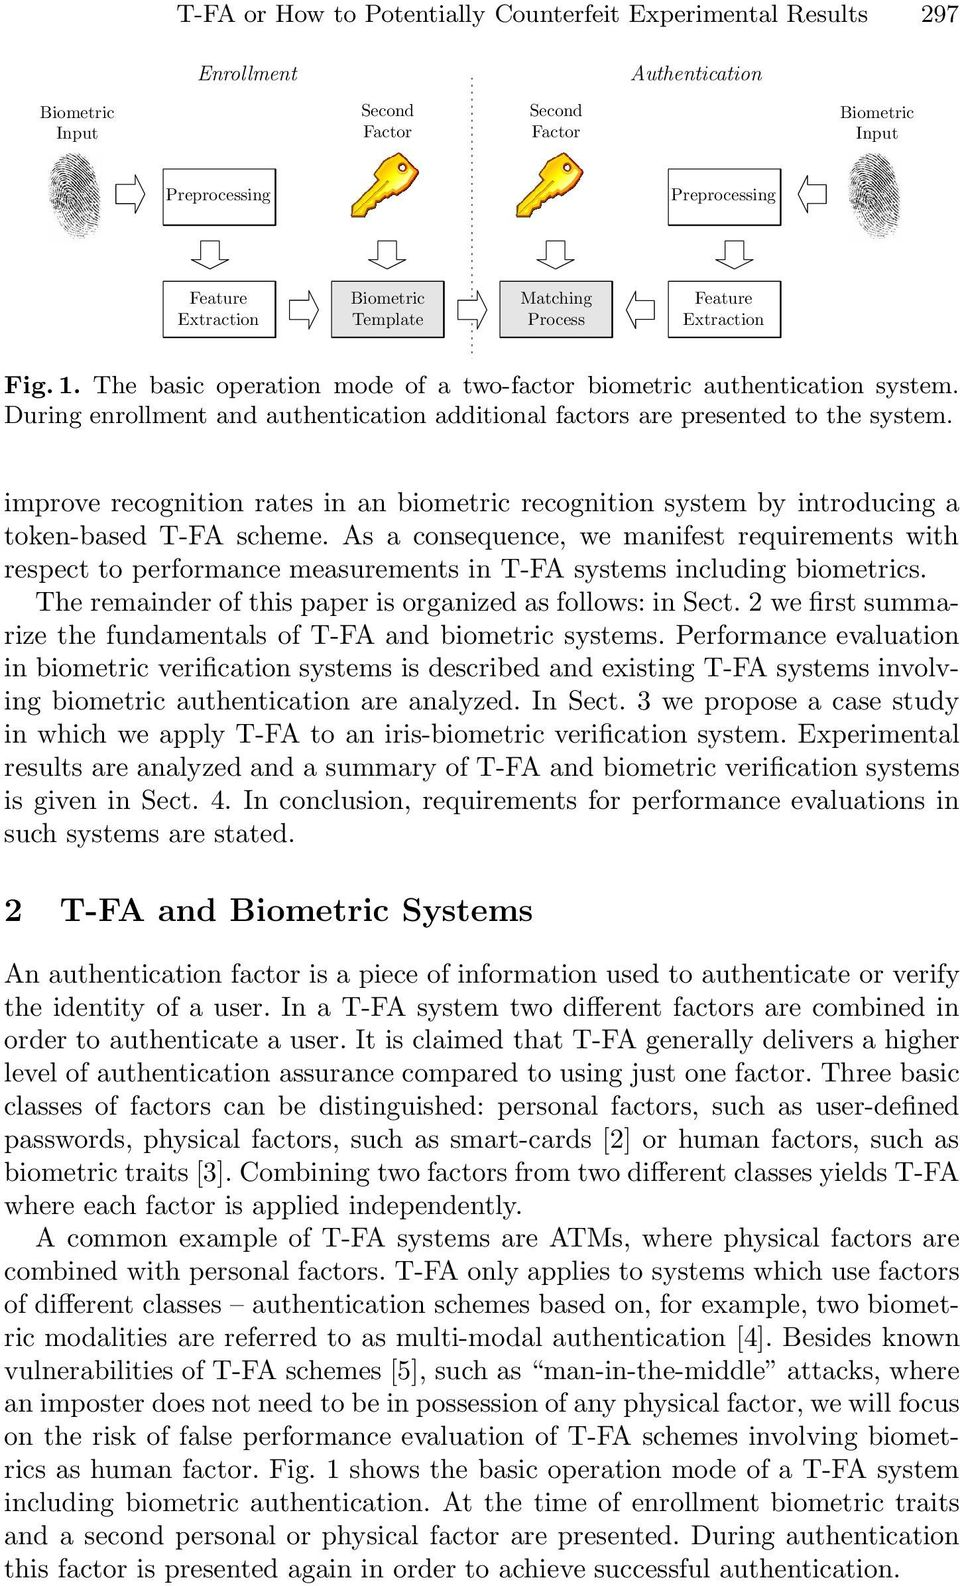 During enrollment and authentication additional factors are presented to the system. improve recognition rates in an biometric recognition system by introducing a token-based T-FA scheme.